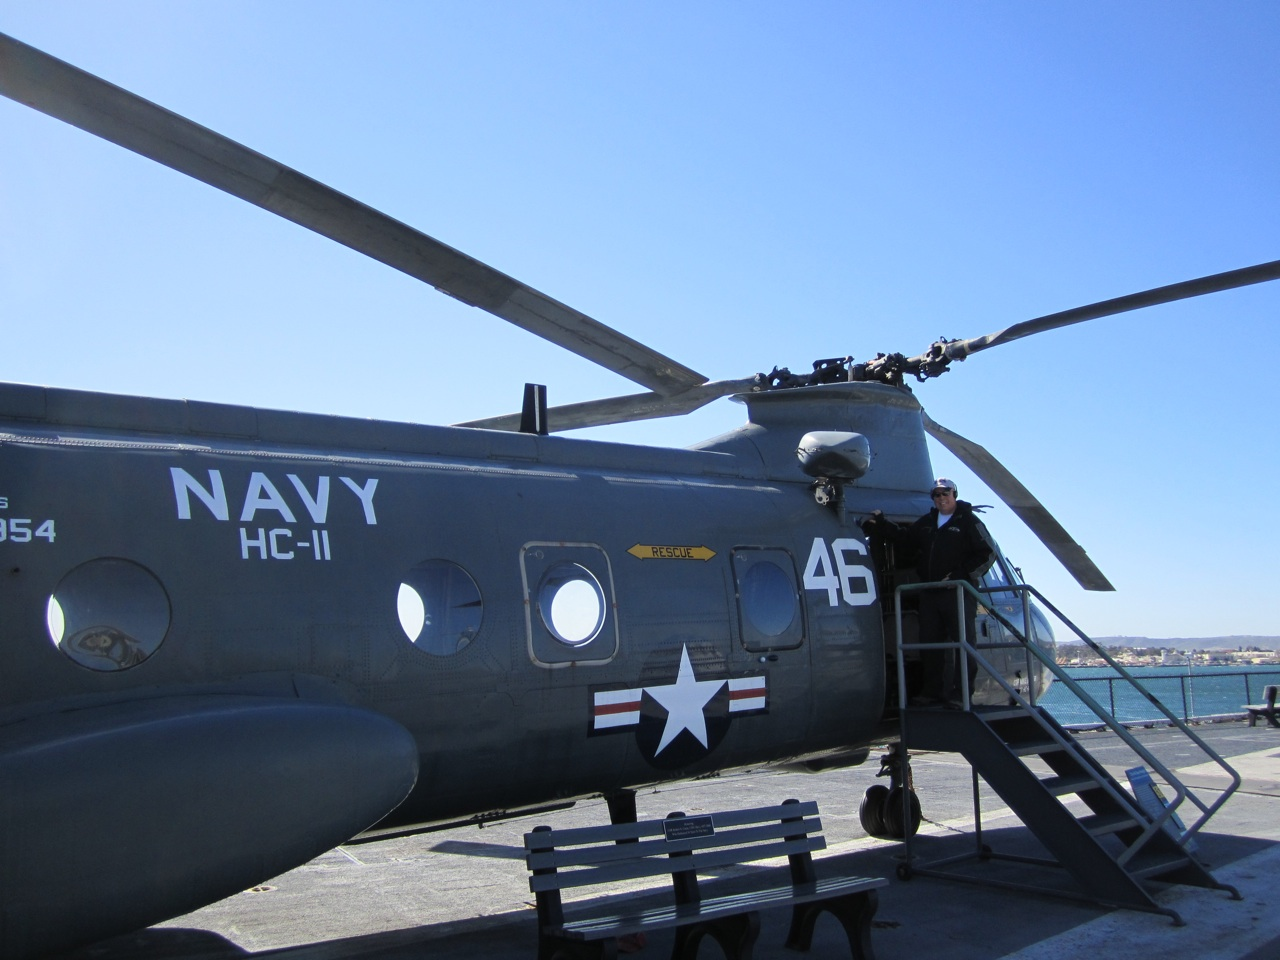 David Entering A Helicopter On The Flight Deck Of The USS Midway